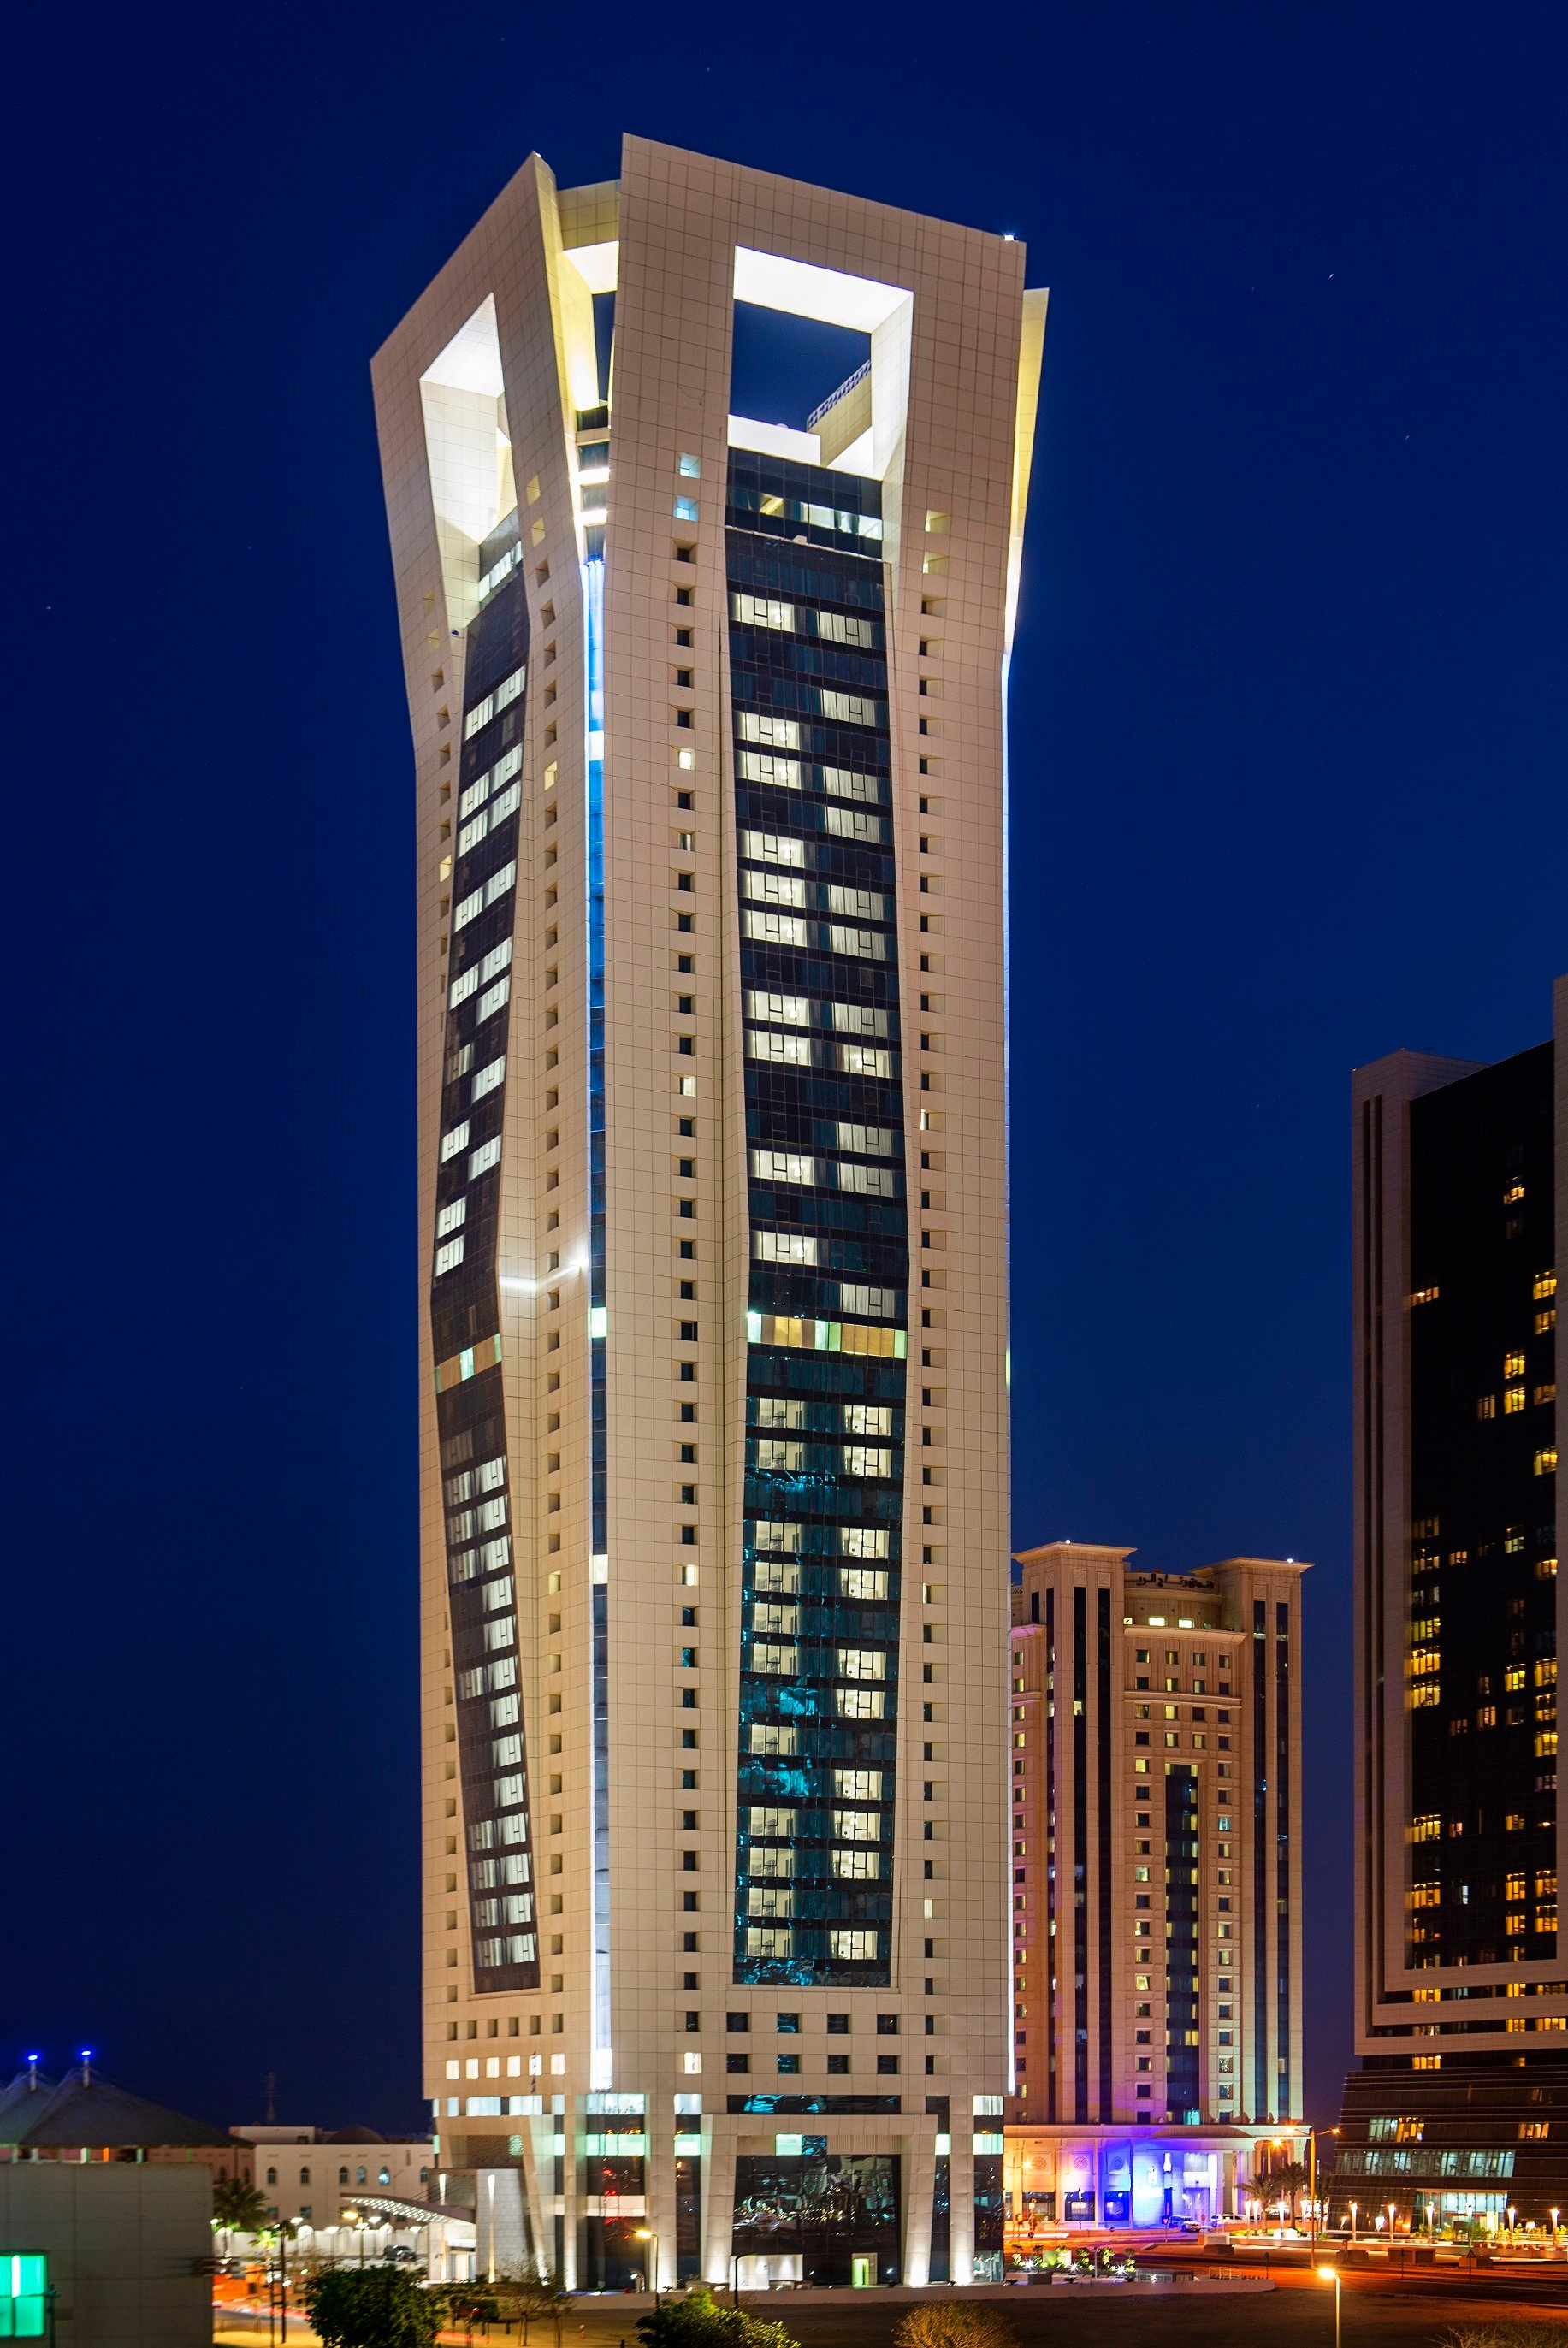 Centara Unveils Majestic Hotel in the Heart of Doha's Business District